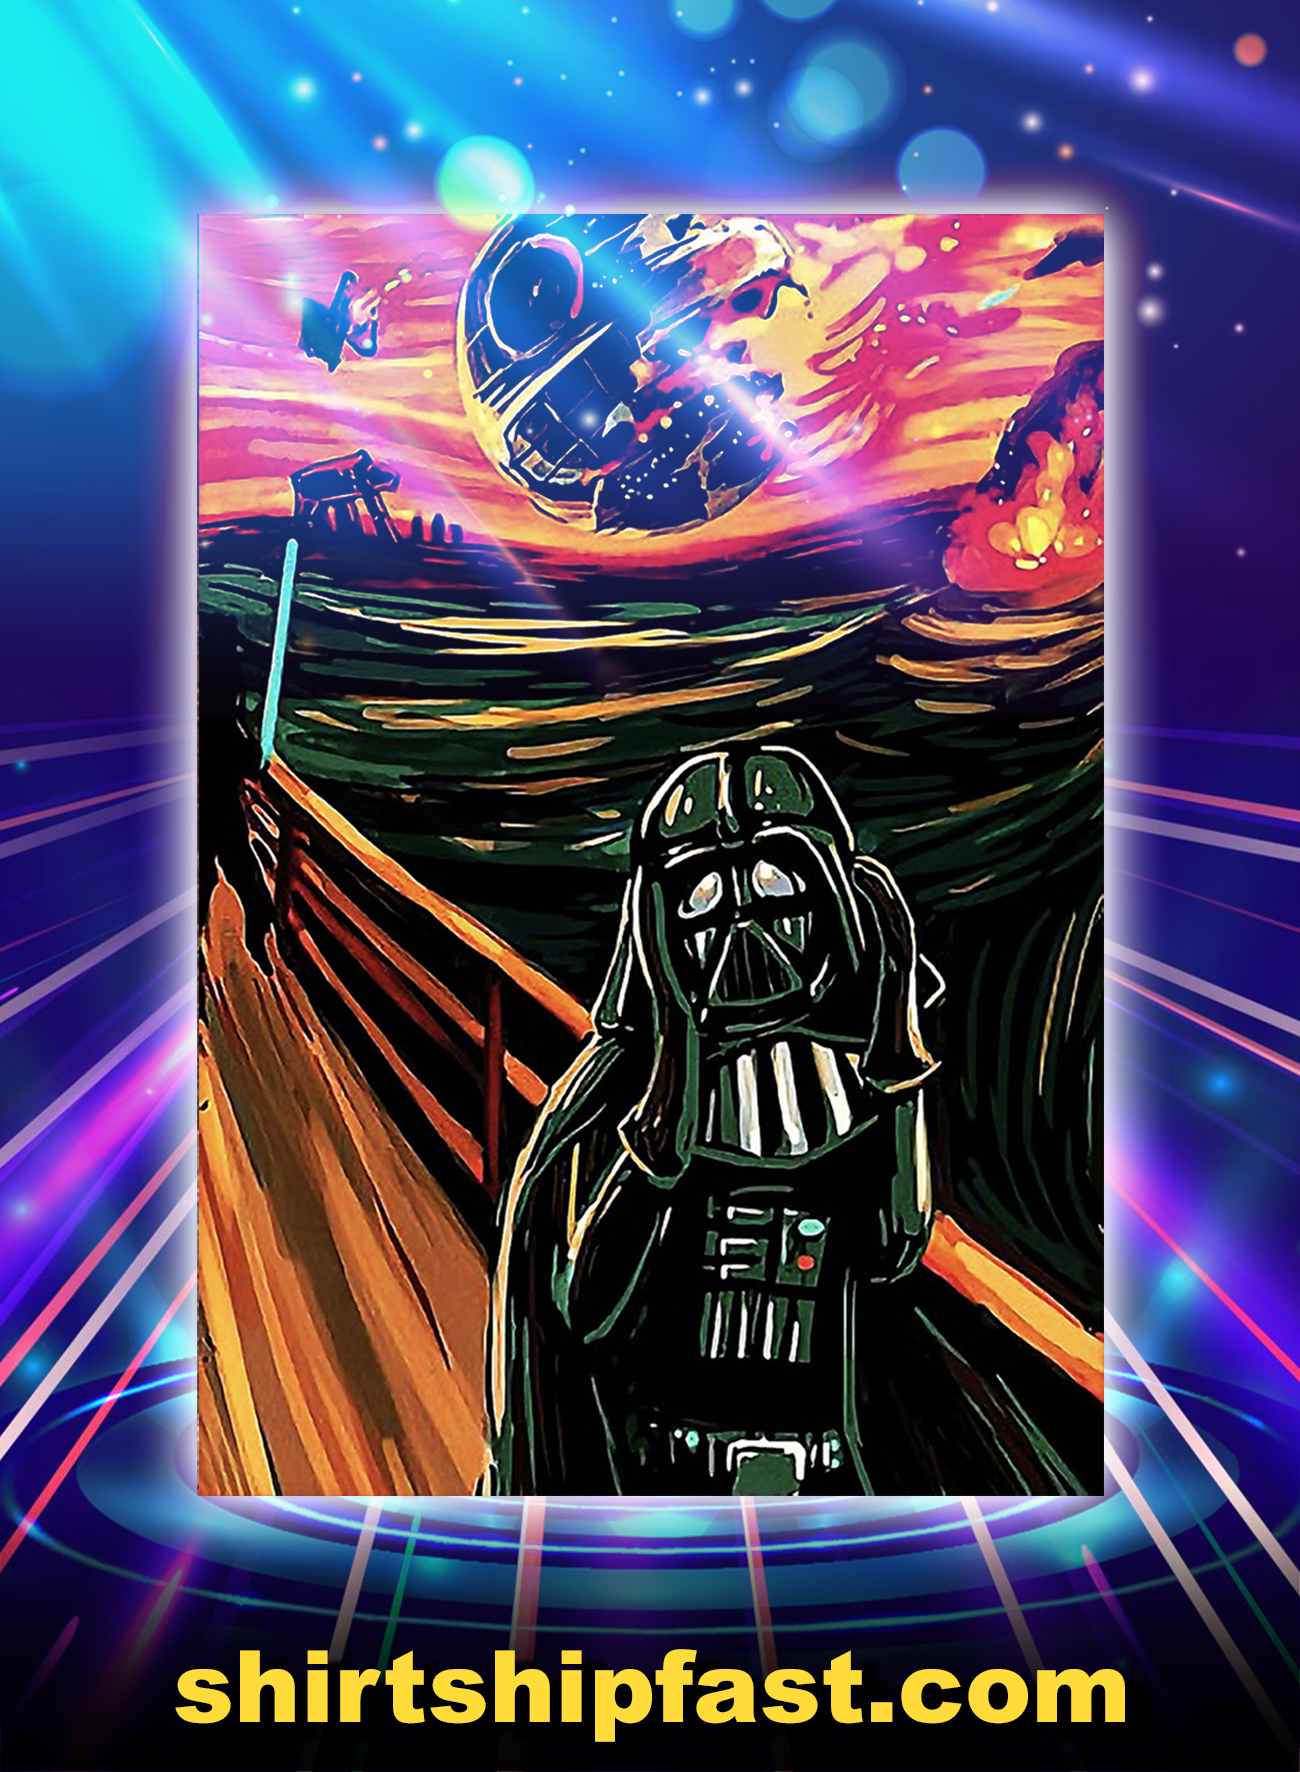 Darth vader and death star scream poster - A1